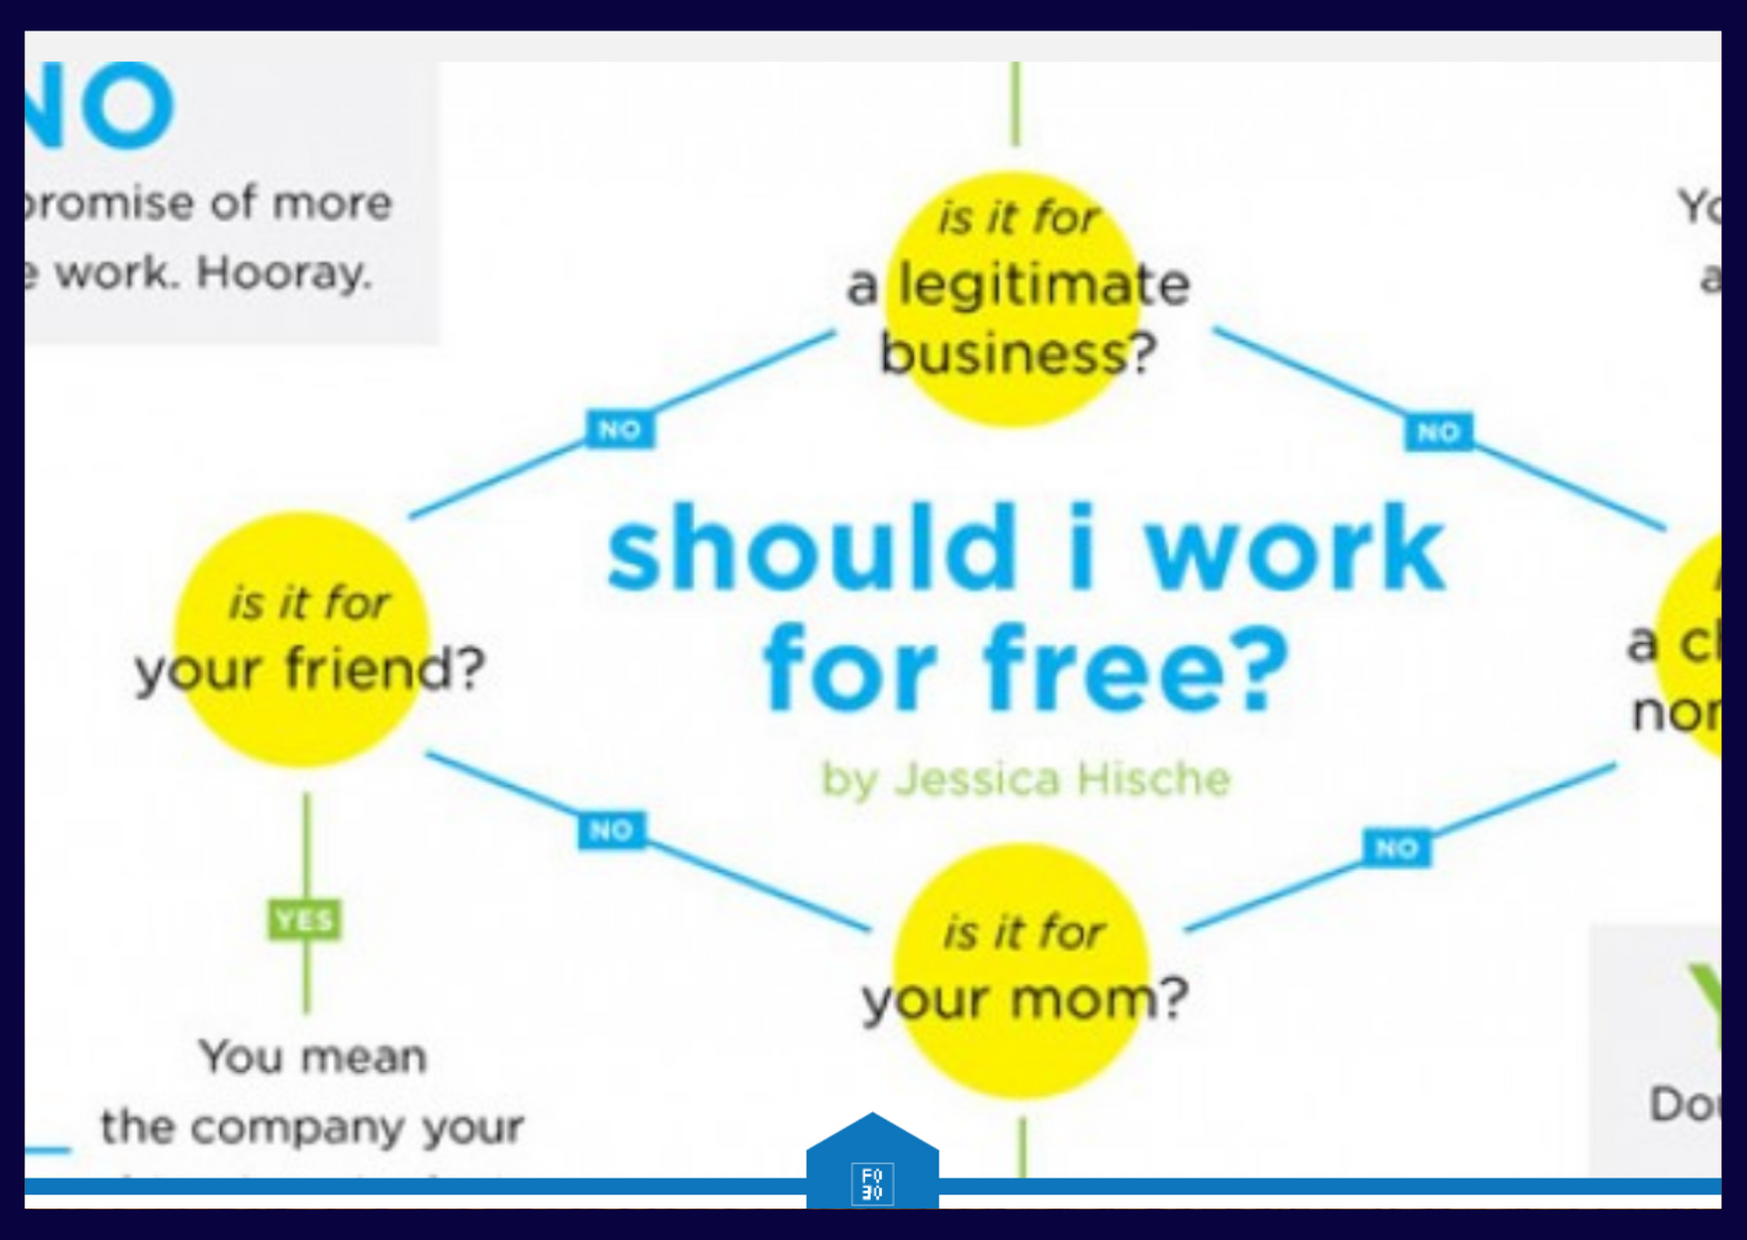 Is working for free the right thing to do?